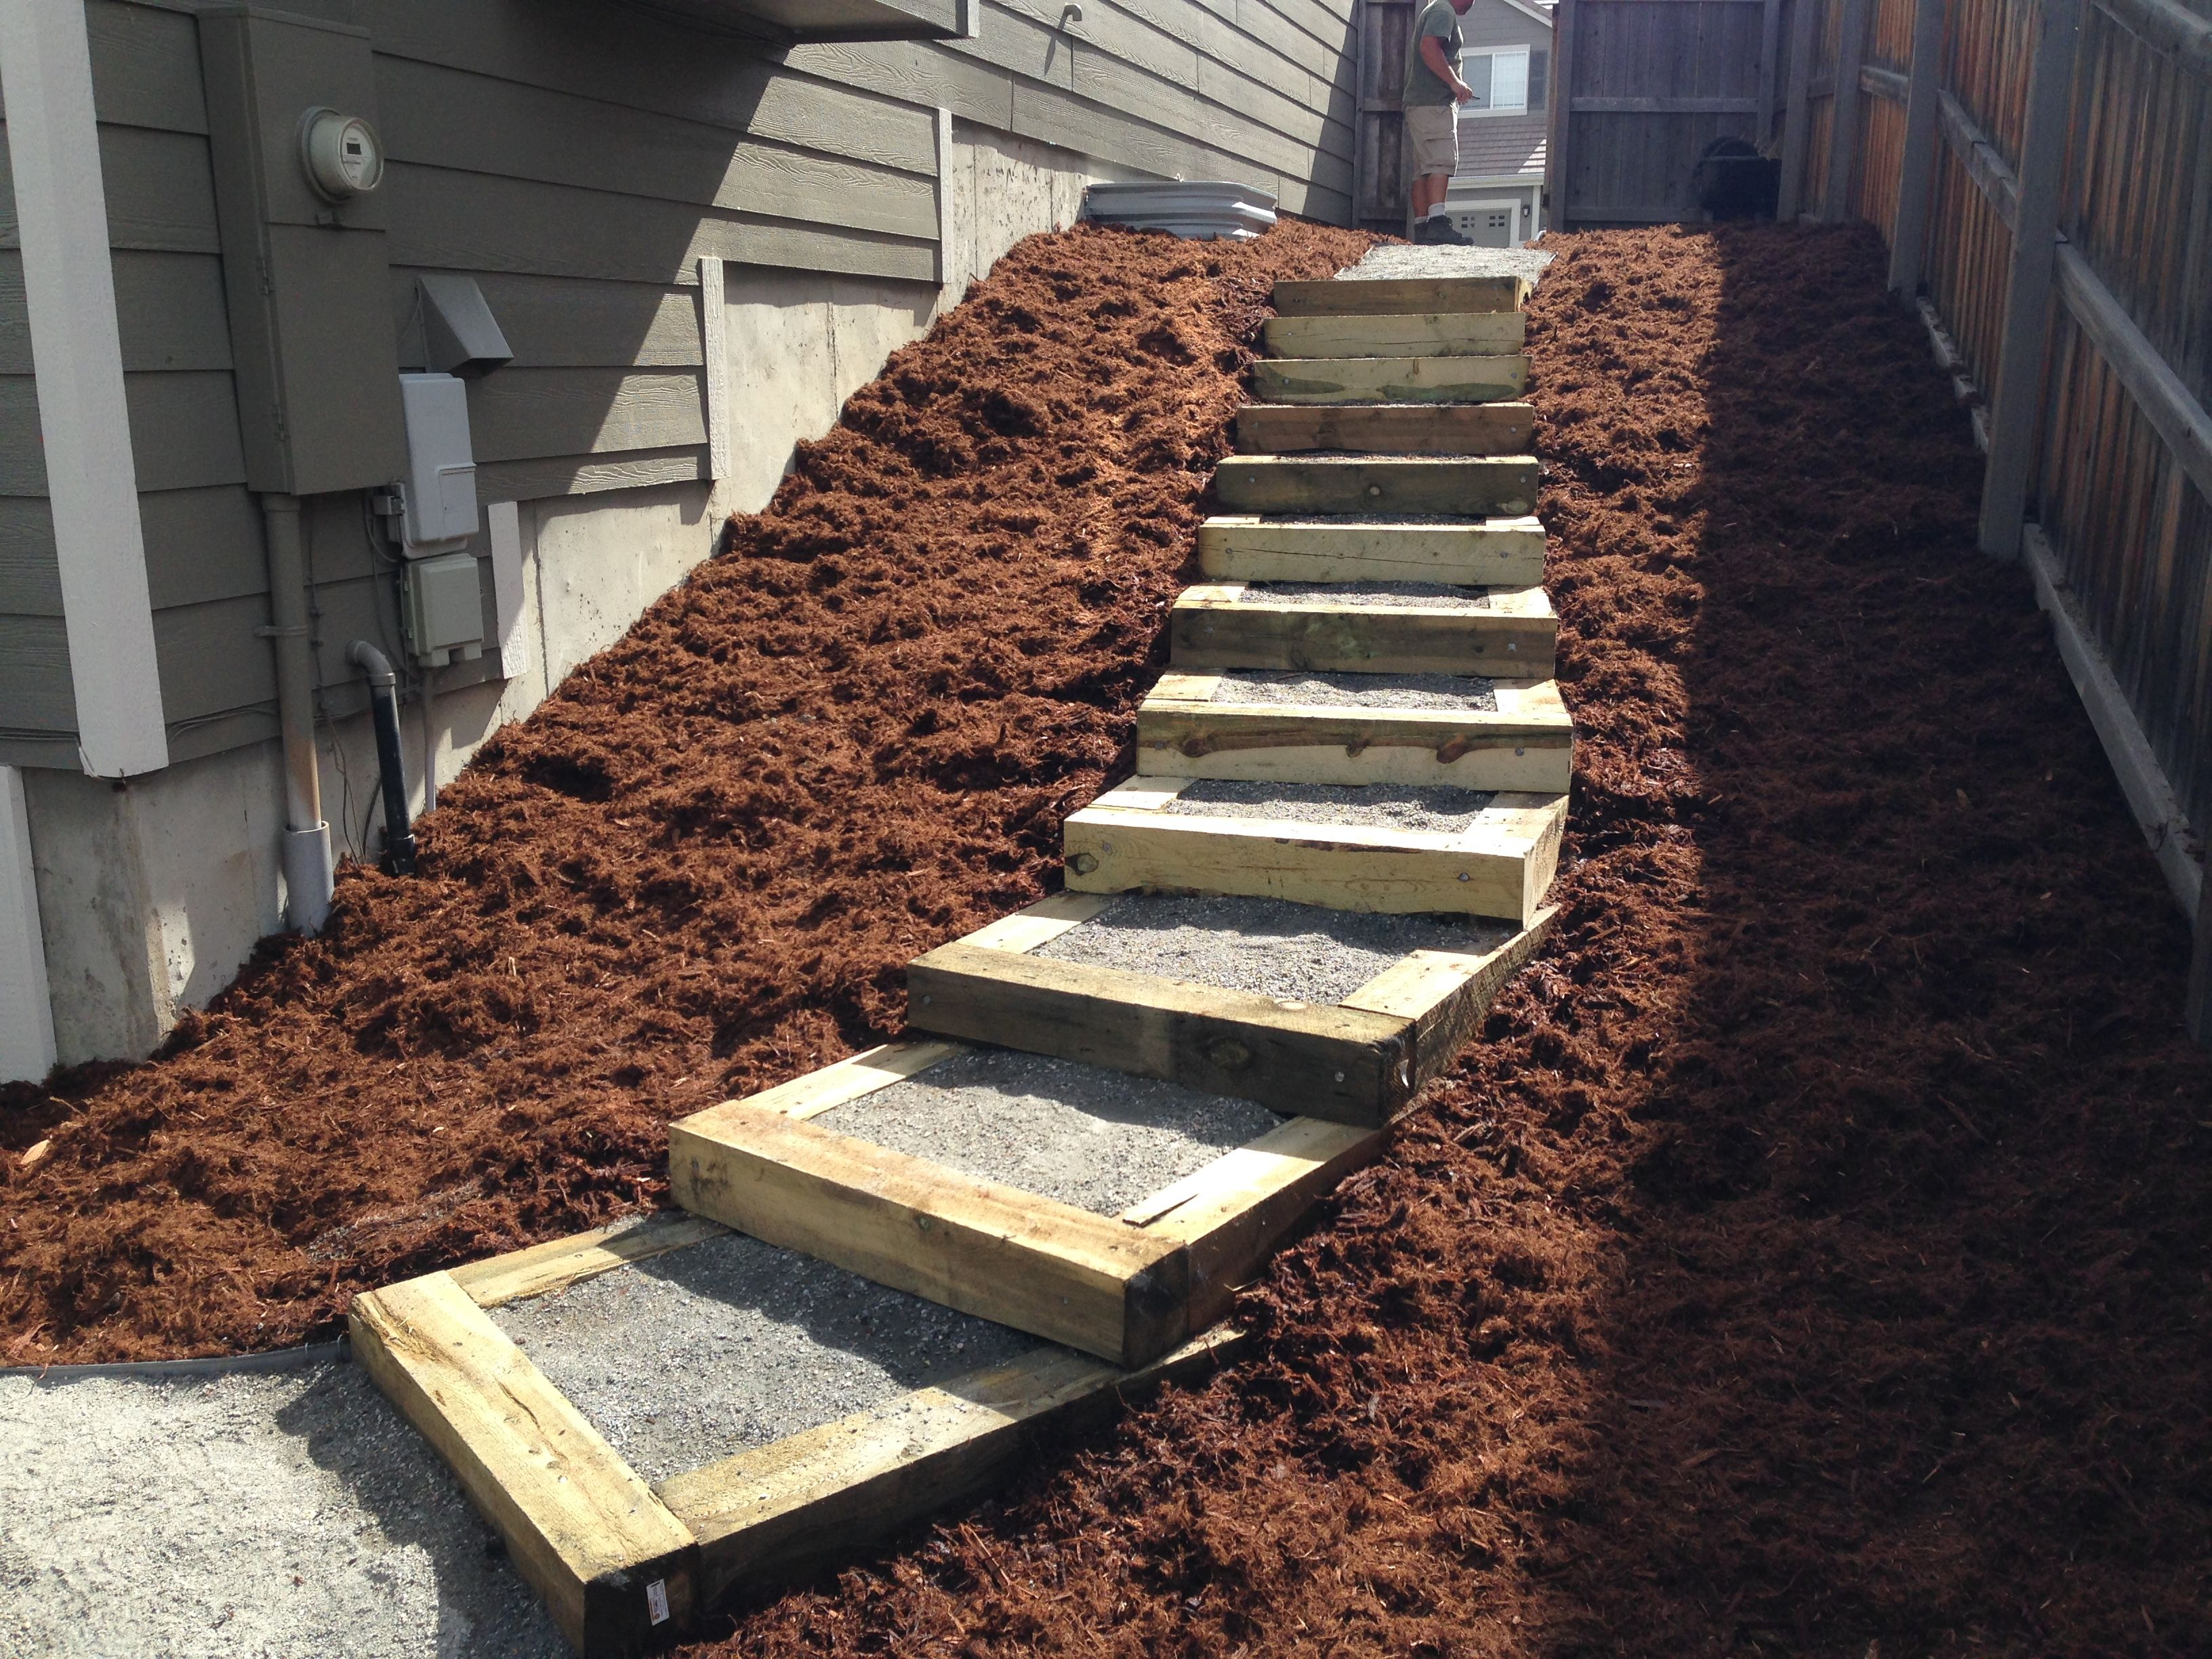 Simple Timber Stairs Are Easy To Design But Rebar And Spikes Are Tough To Pound Built By Glacier View Landscape De Hardscape Landscape Design Dream Garden